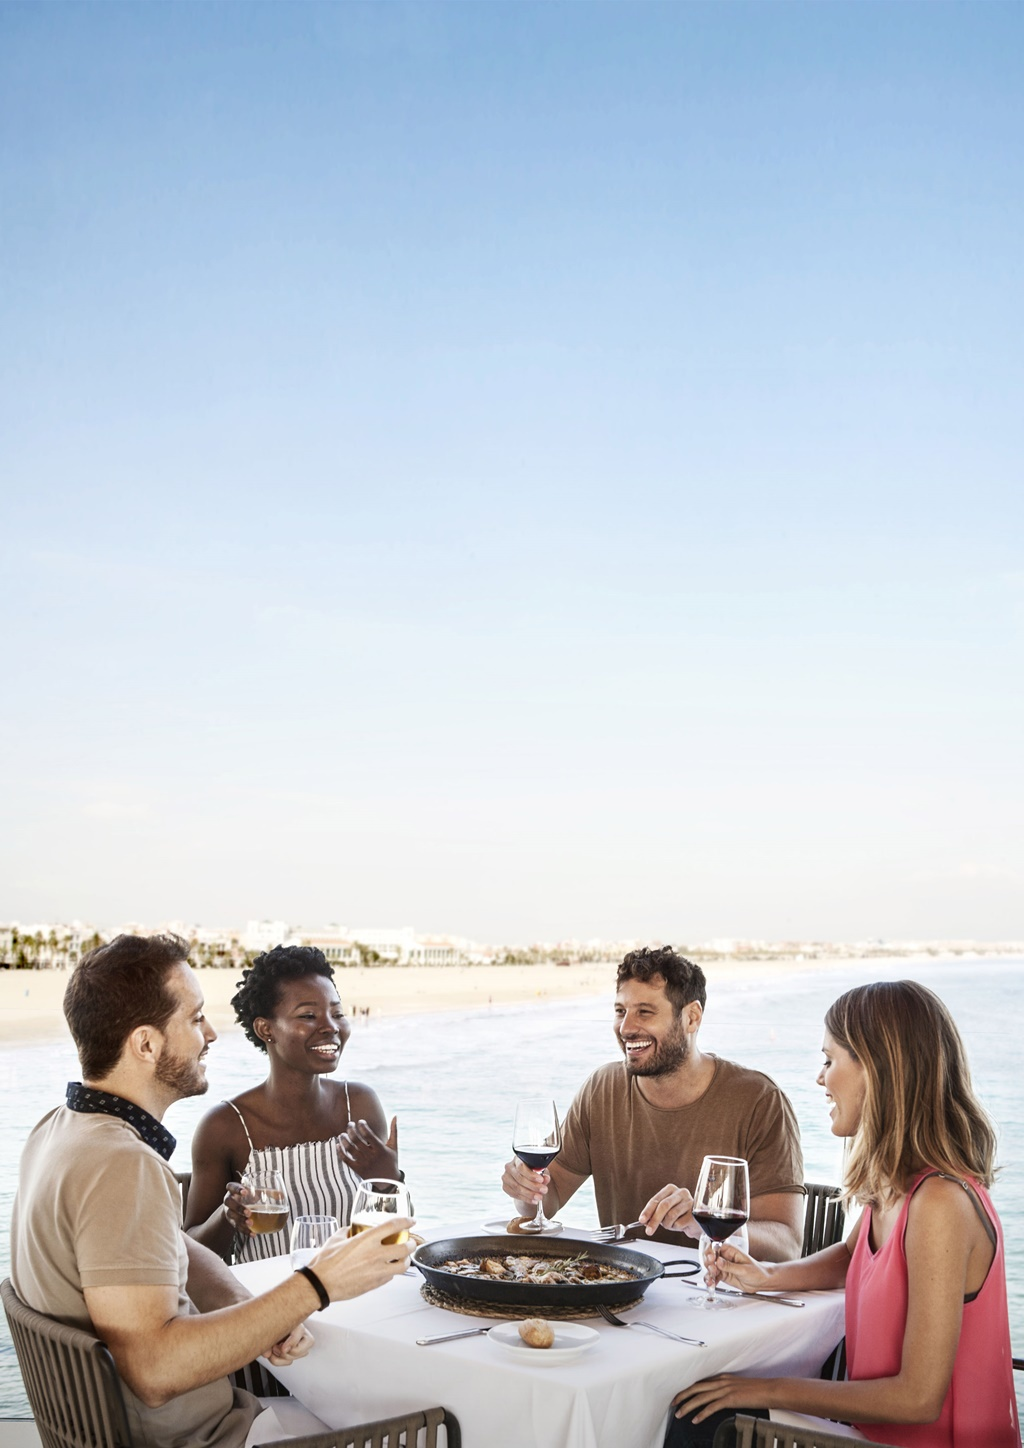 Sample an authentic Valencian paella by the sea